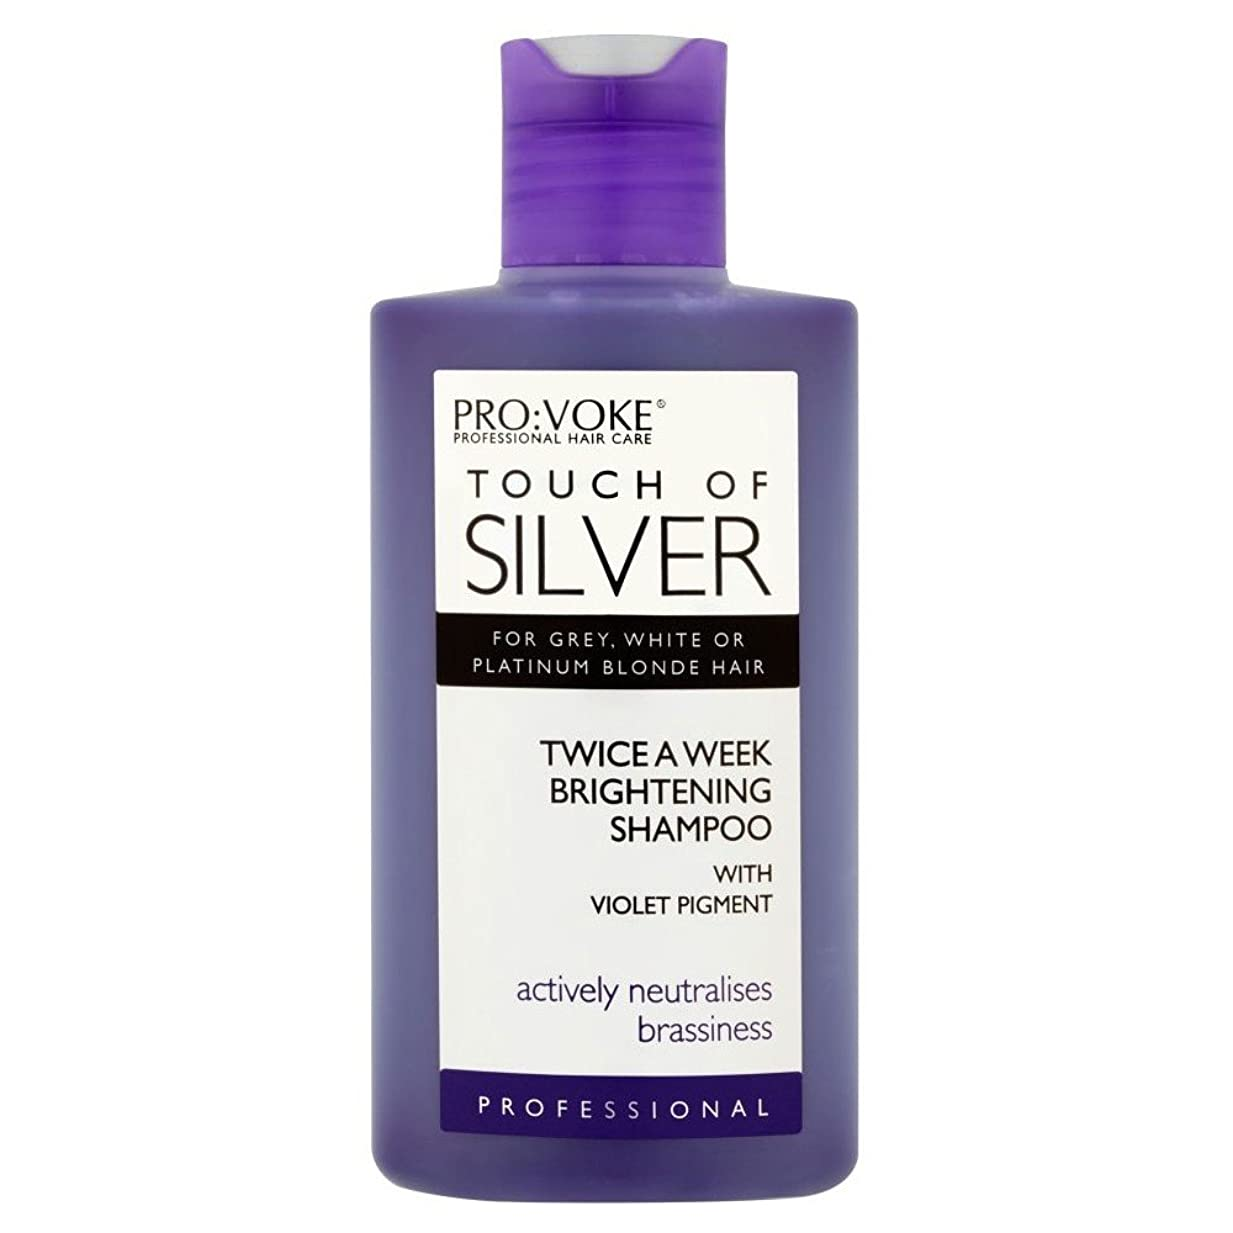 Pro:voke Touch of Silver Professional Twice a Week Brightening Shampoo (150ml) プロ:プロの銀二回週白シャンプーのvokeタッチ( 150ミリリットル) [並行輸入品]